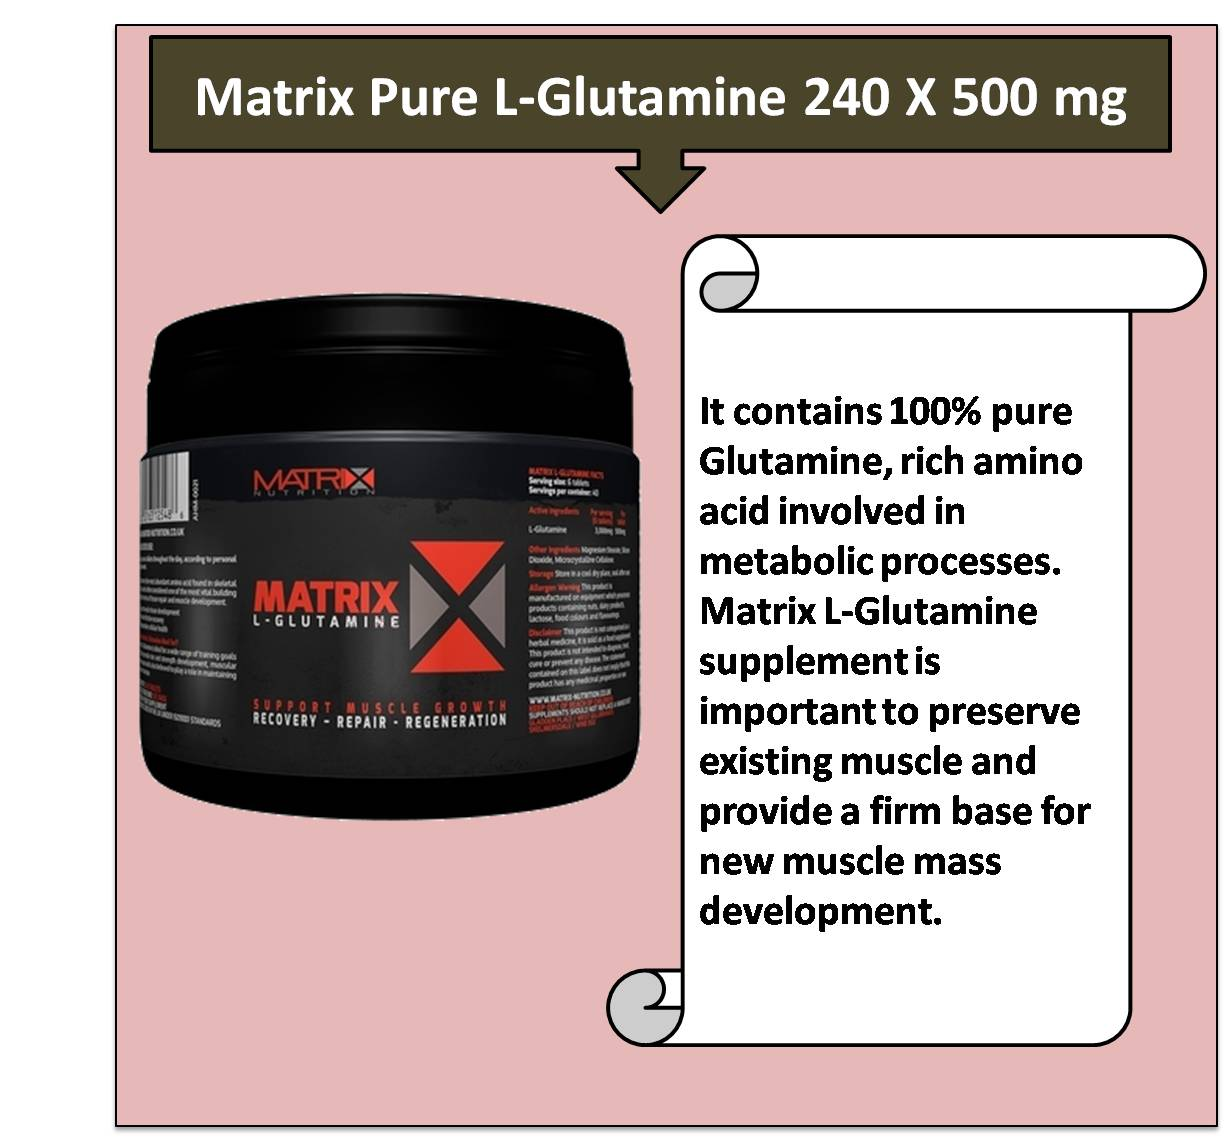 Matrix Pure L-Glutamine 240 X 500 mg